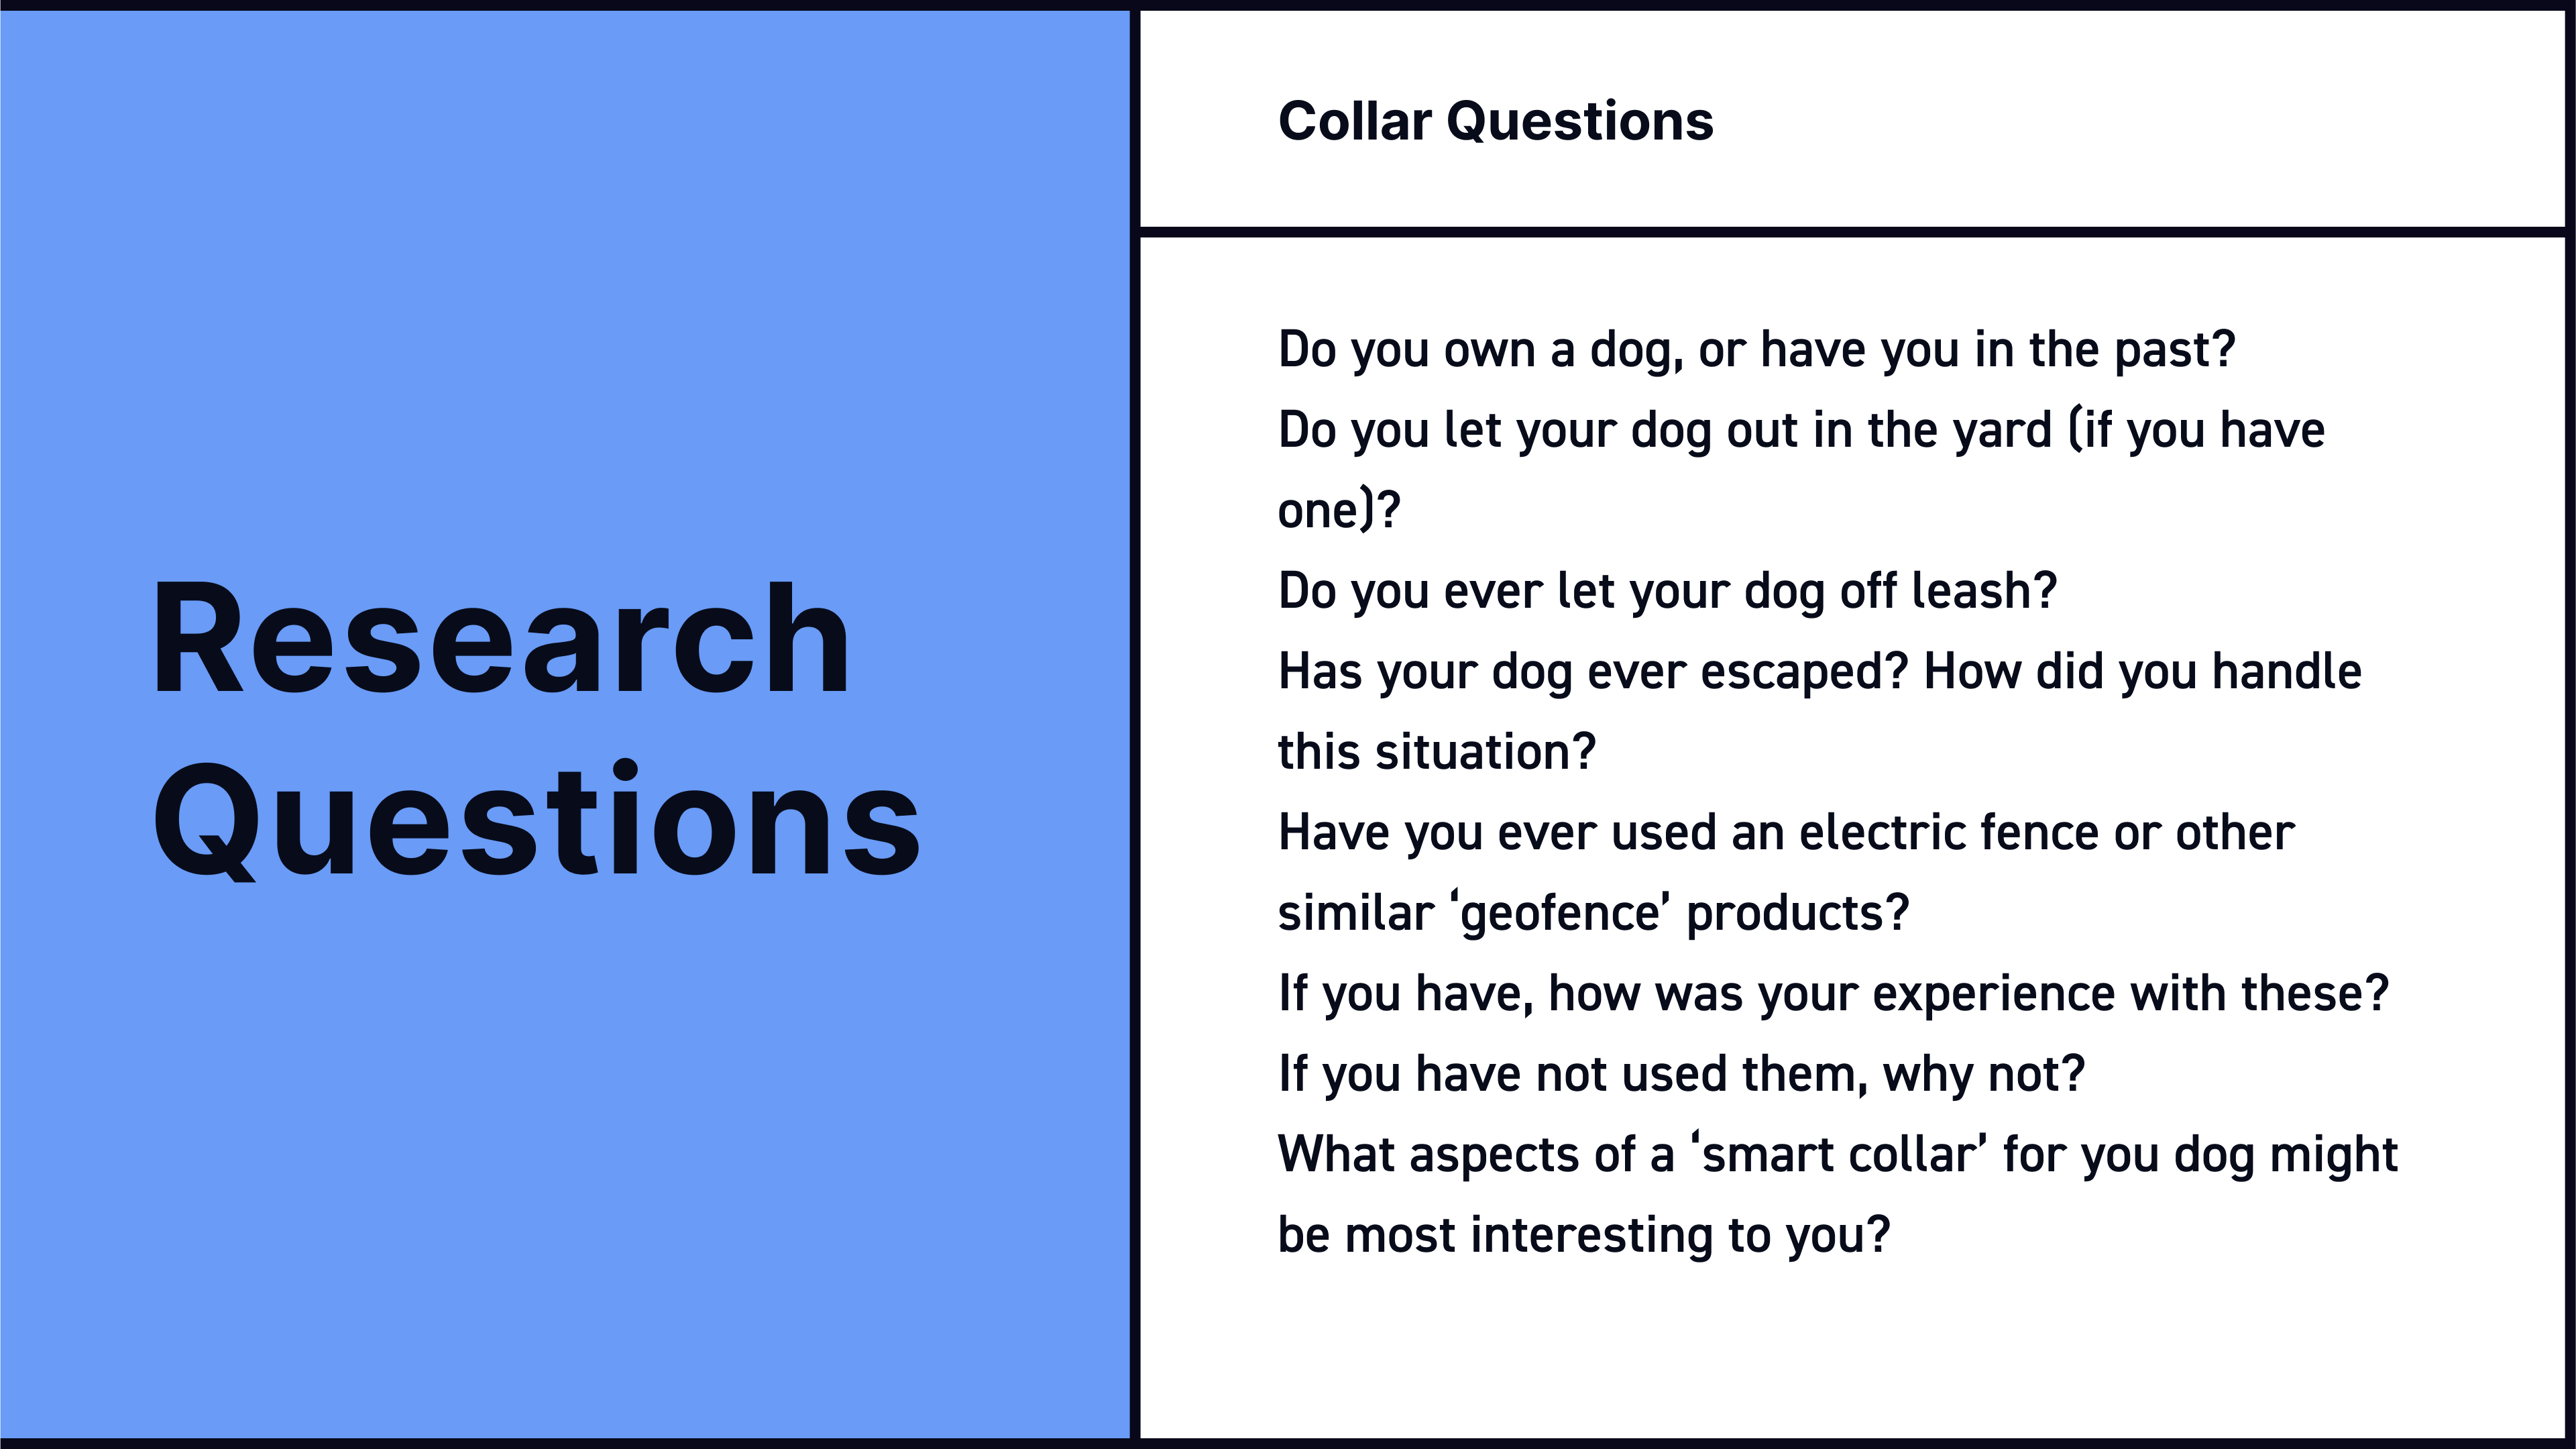 A set of user research questions about our project brief—an electric dog collar.